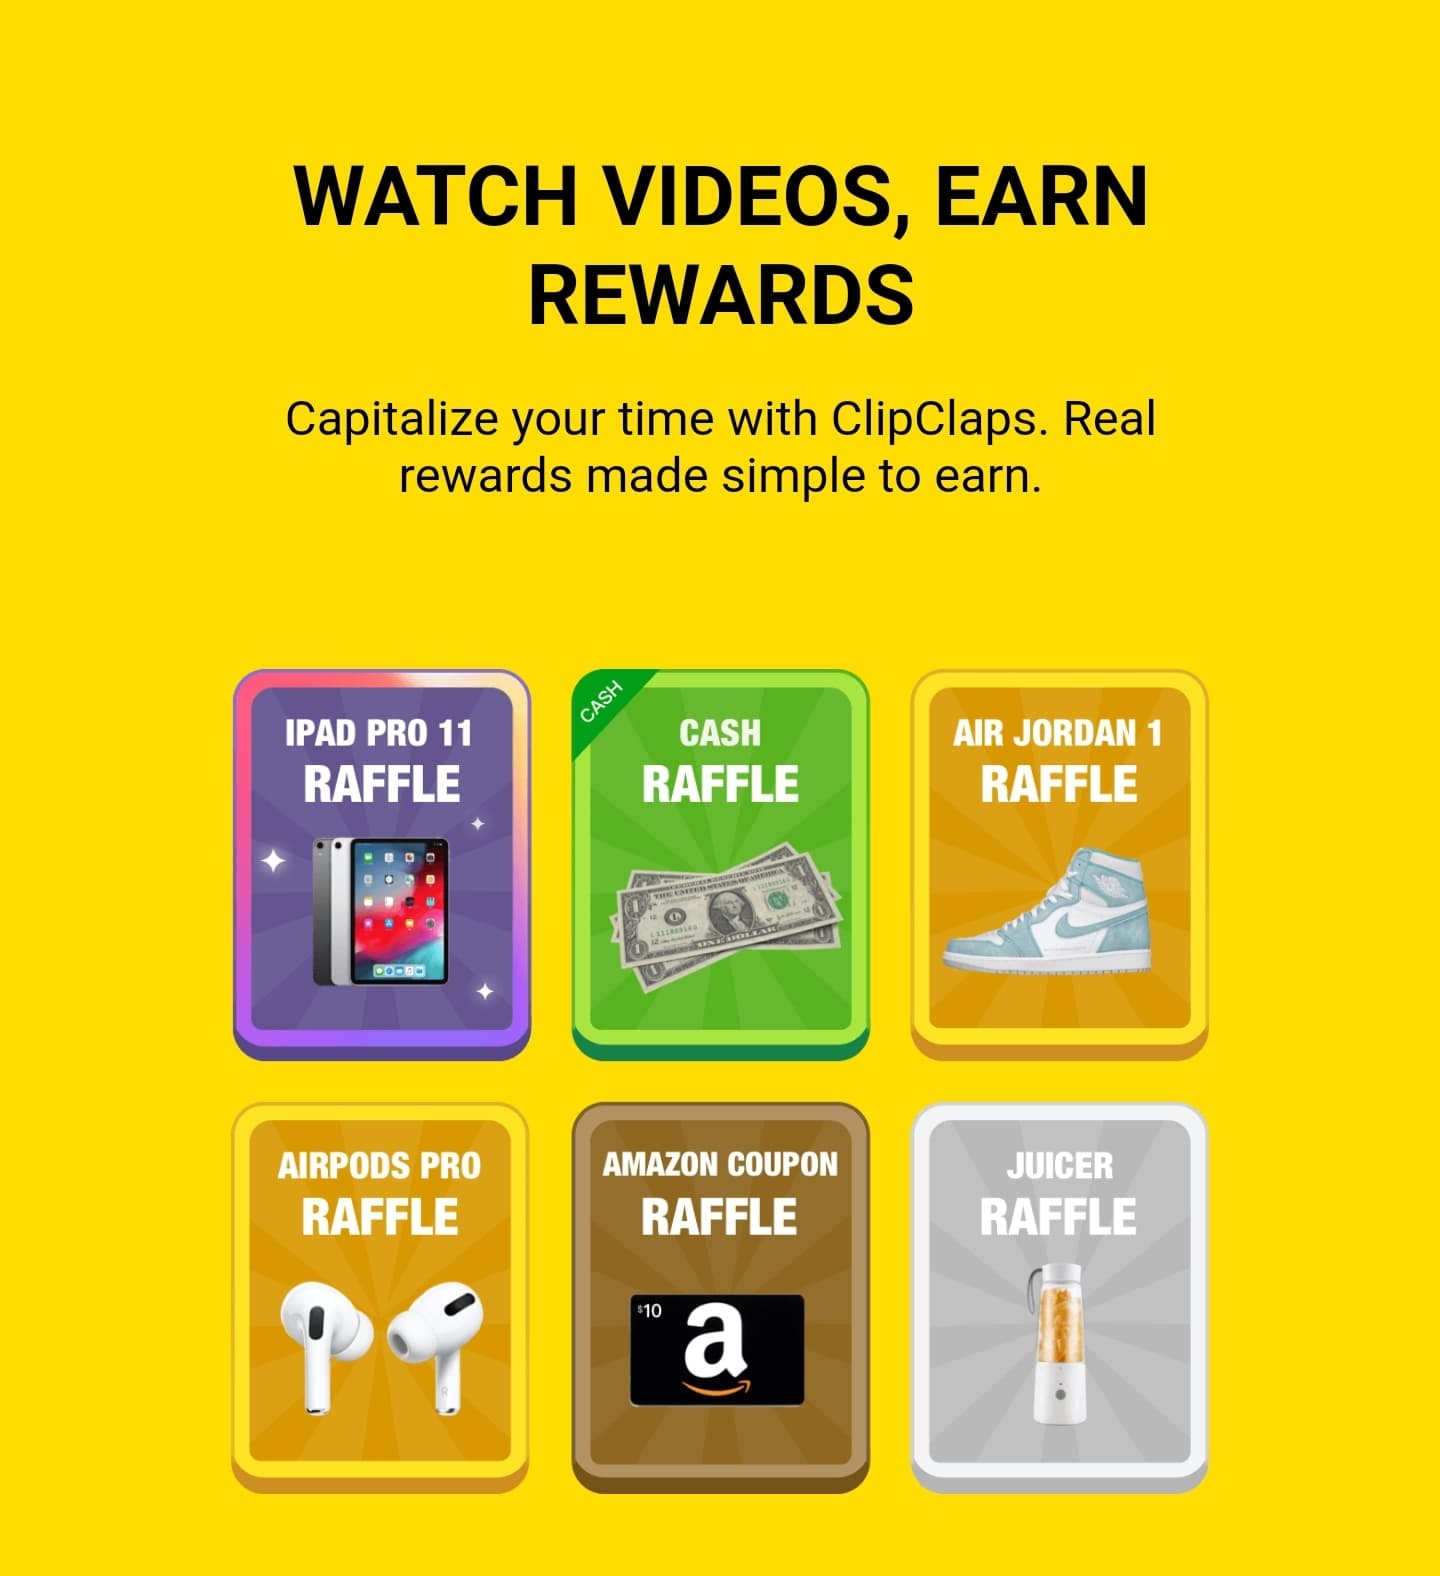 Watch videos and earn rewards